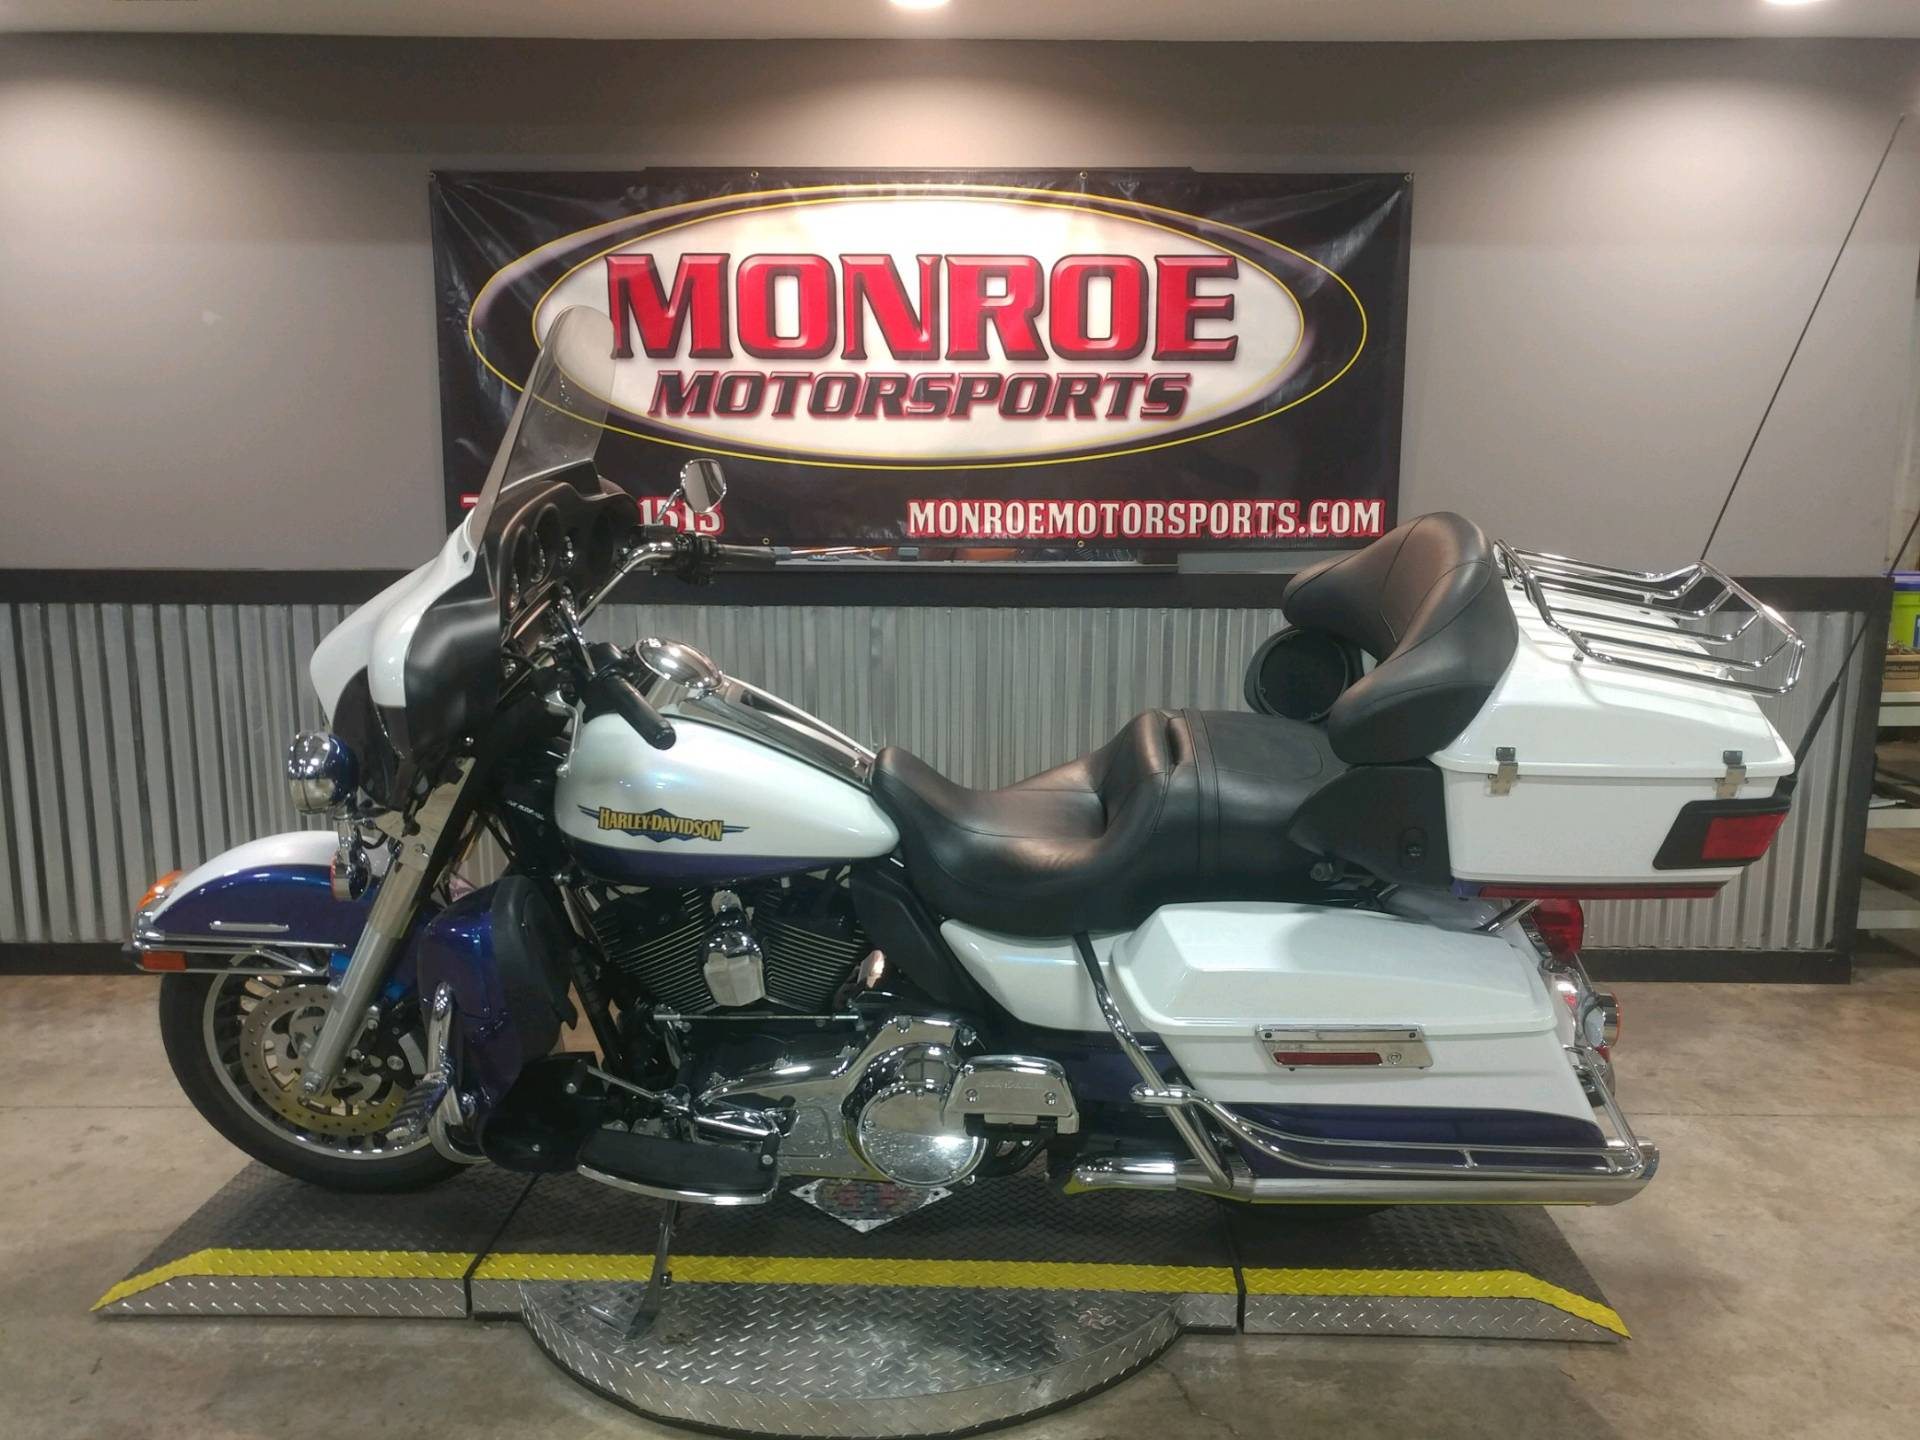 2010 Harley-Davidson Electra Glide® Ultra Limited in Monroe, Michigan - Photo 2